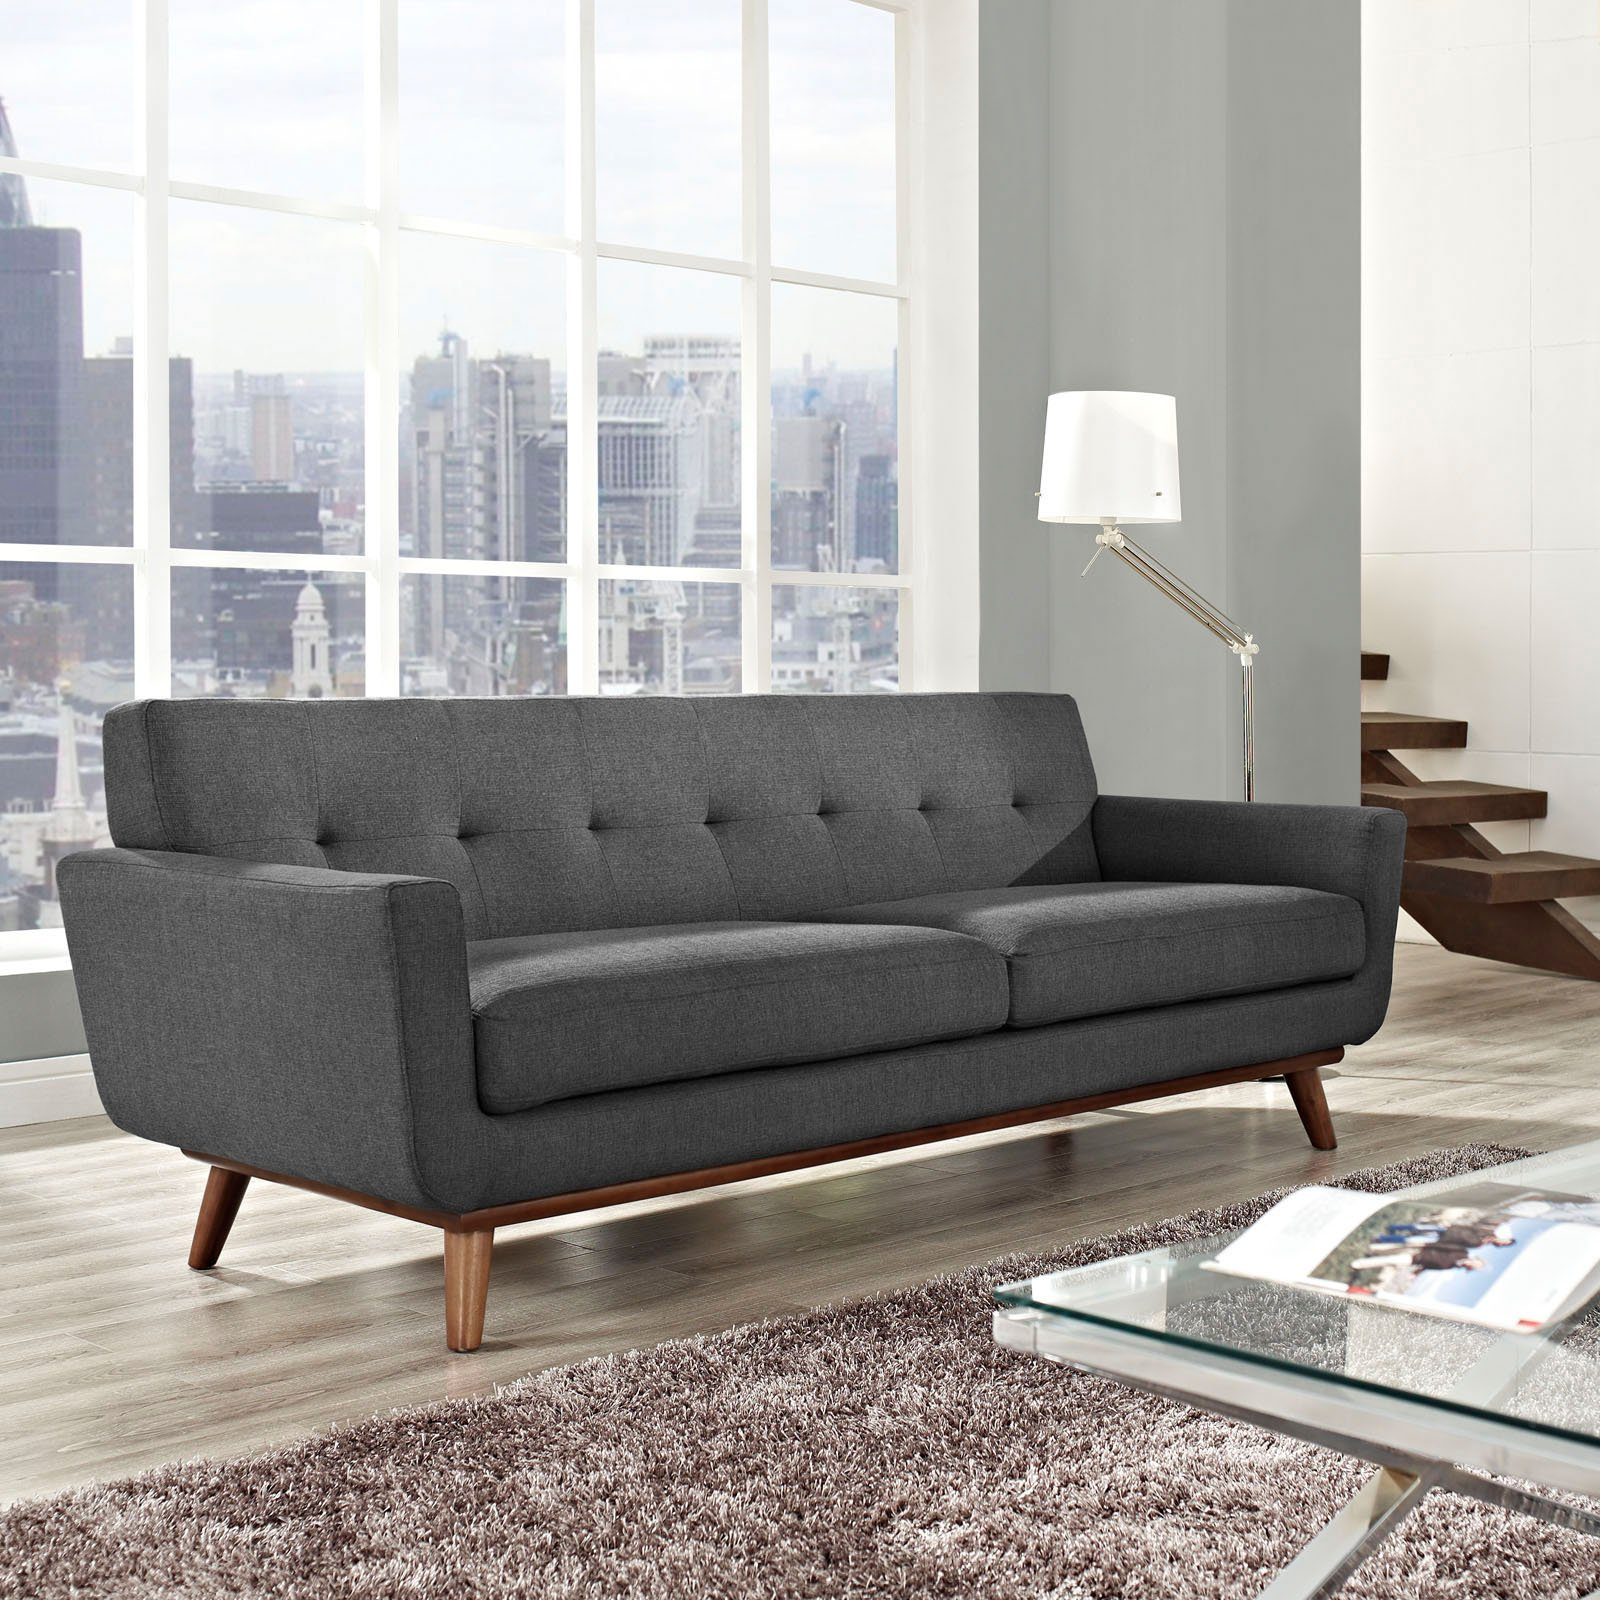 Modway Engage Upholstered Tufted Sofa, Multiple Colors   Walmart.com